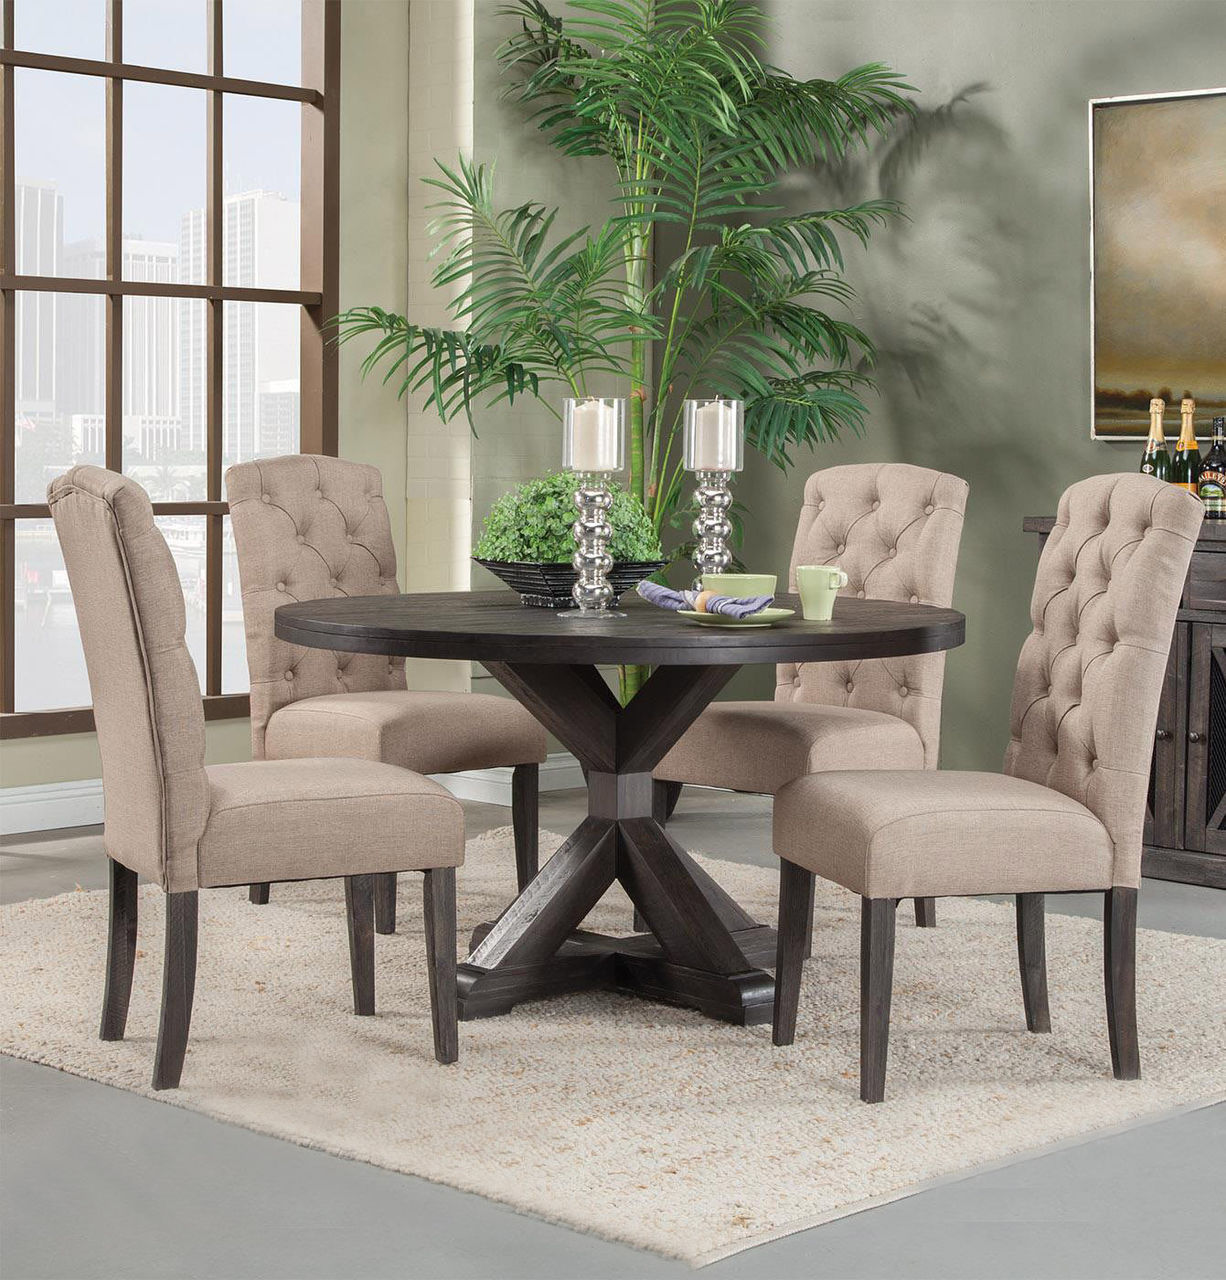 Alpine Round Dining Table